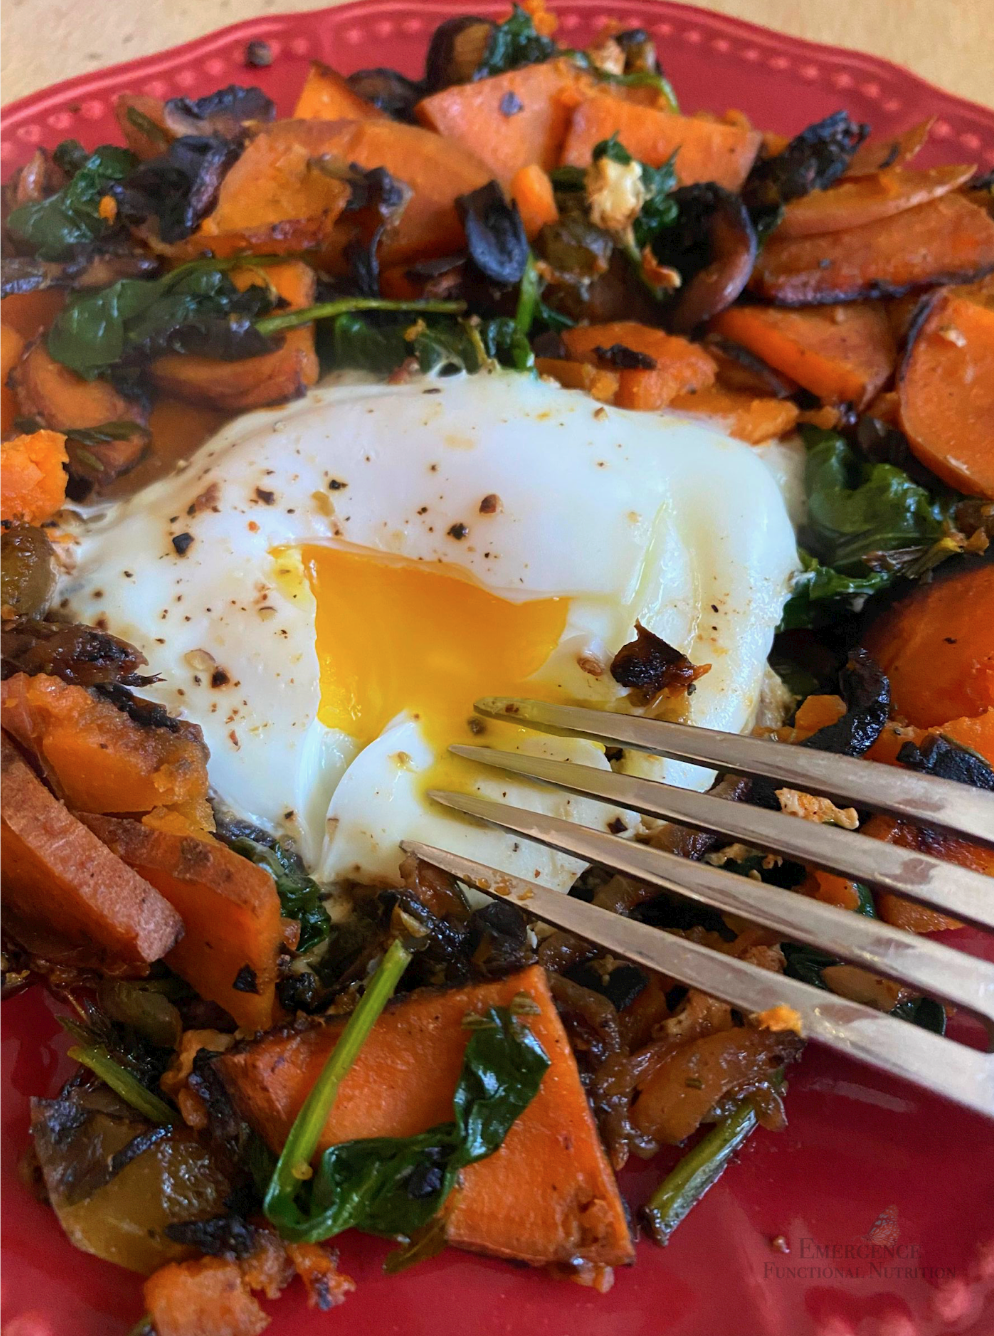 Vegetable hash on red plate